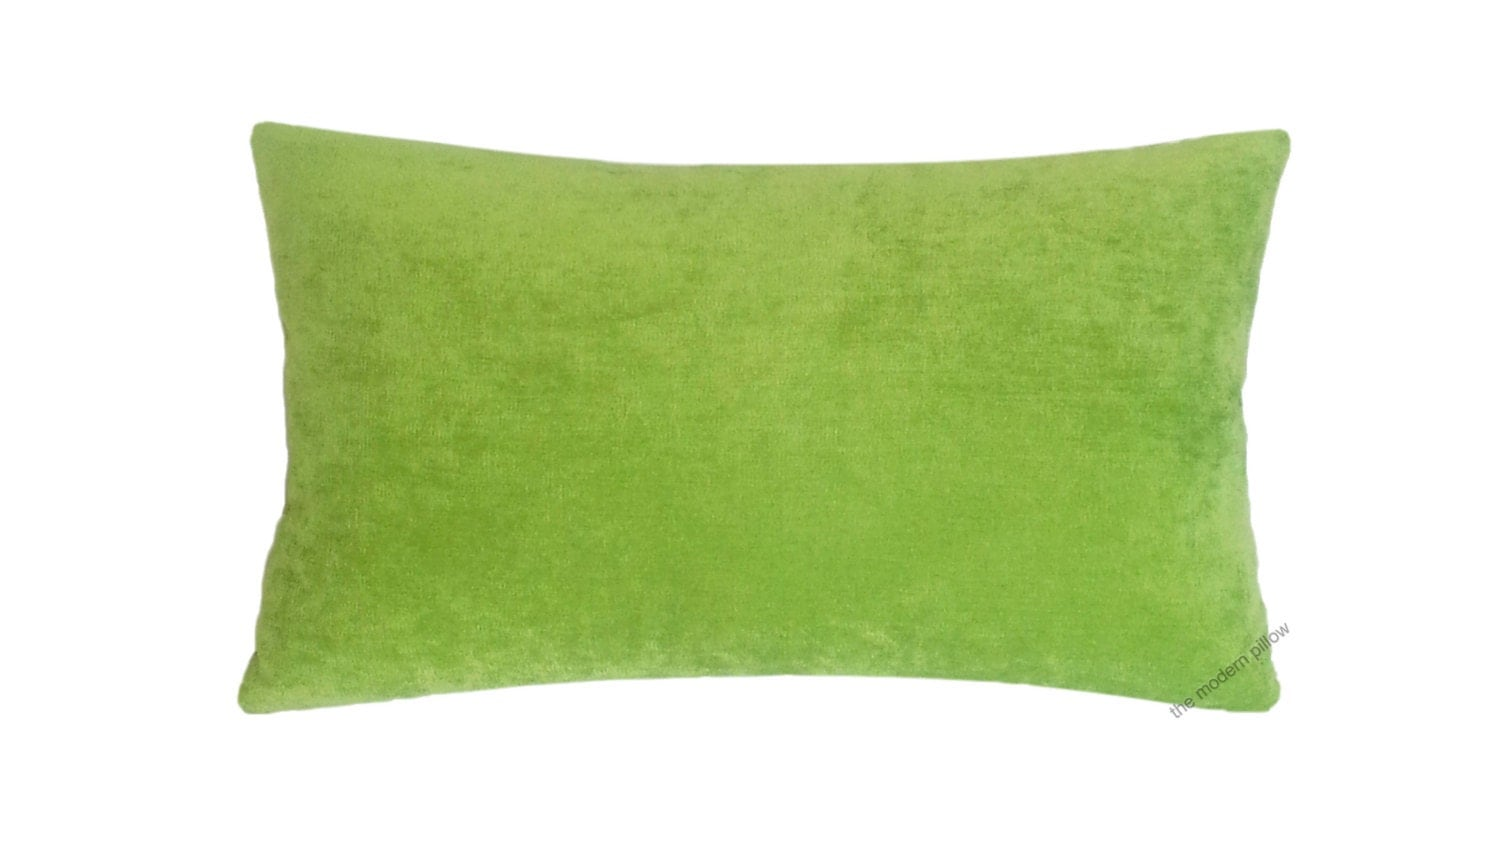 Throw Pillows Linen : Lime Green Velvet Solid Decorative Throw Pillow by TheModernPillow